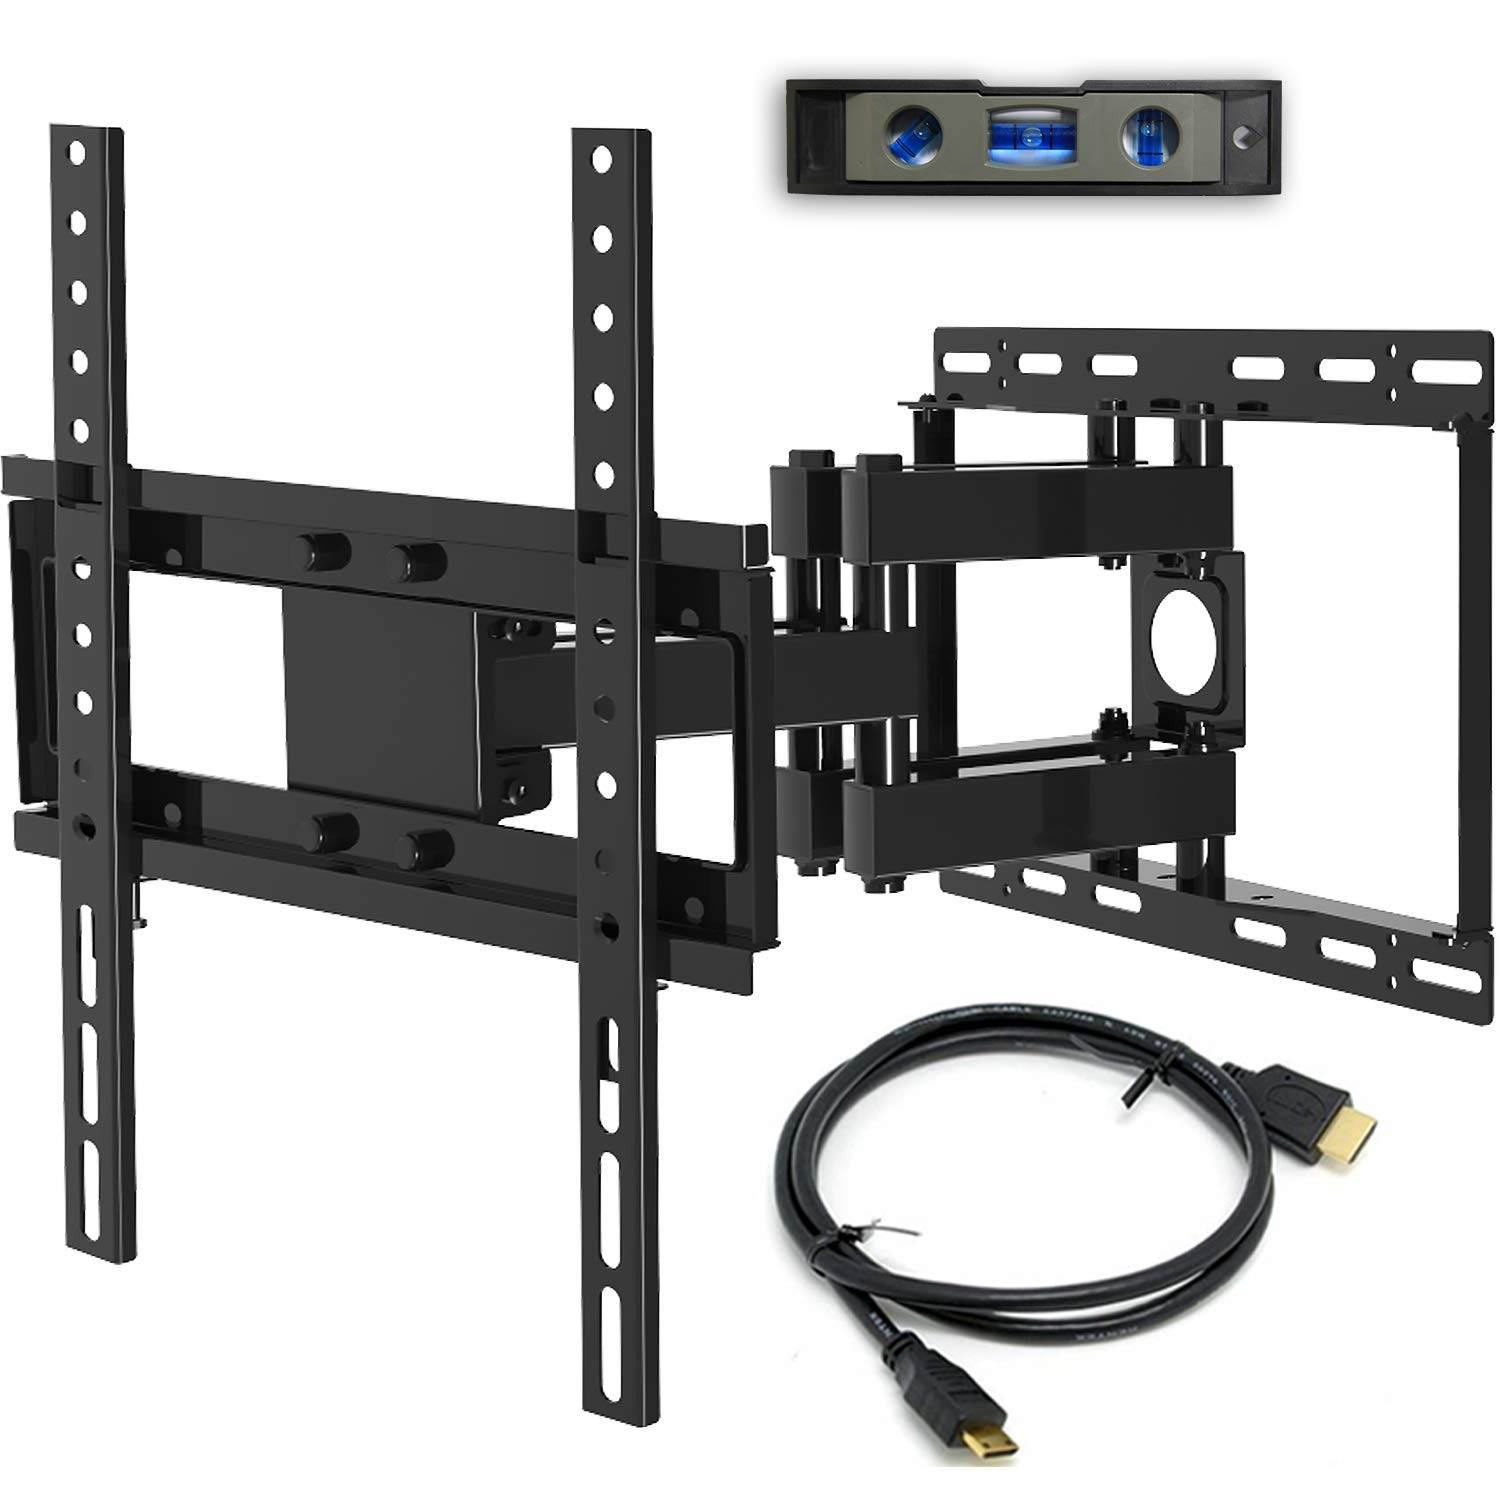 Everstone Full Motion Articulating TV Wall Mount Bracket for 26-60 Inch Flat Screes Curved by Everstone